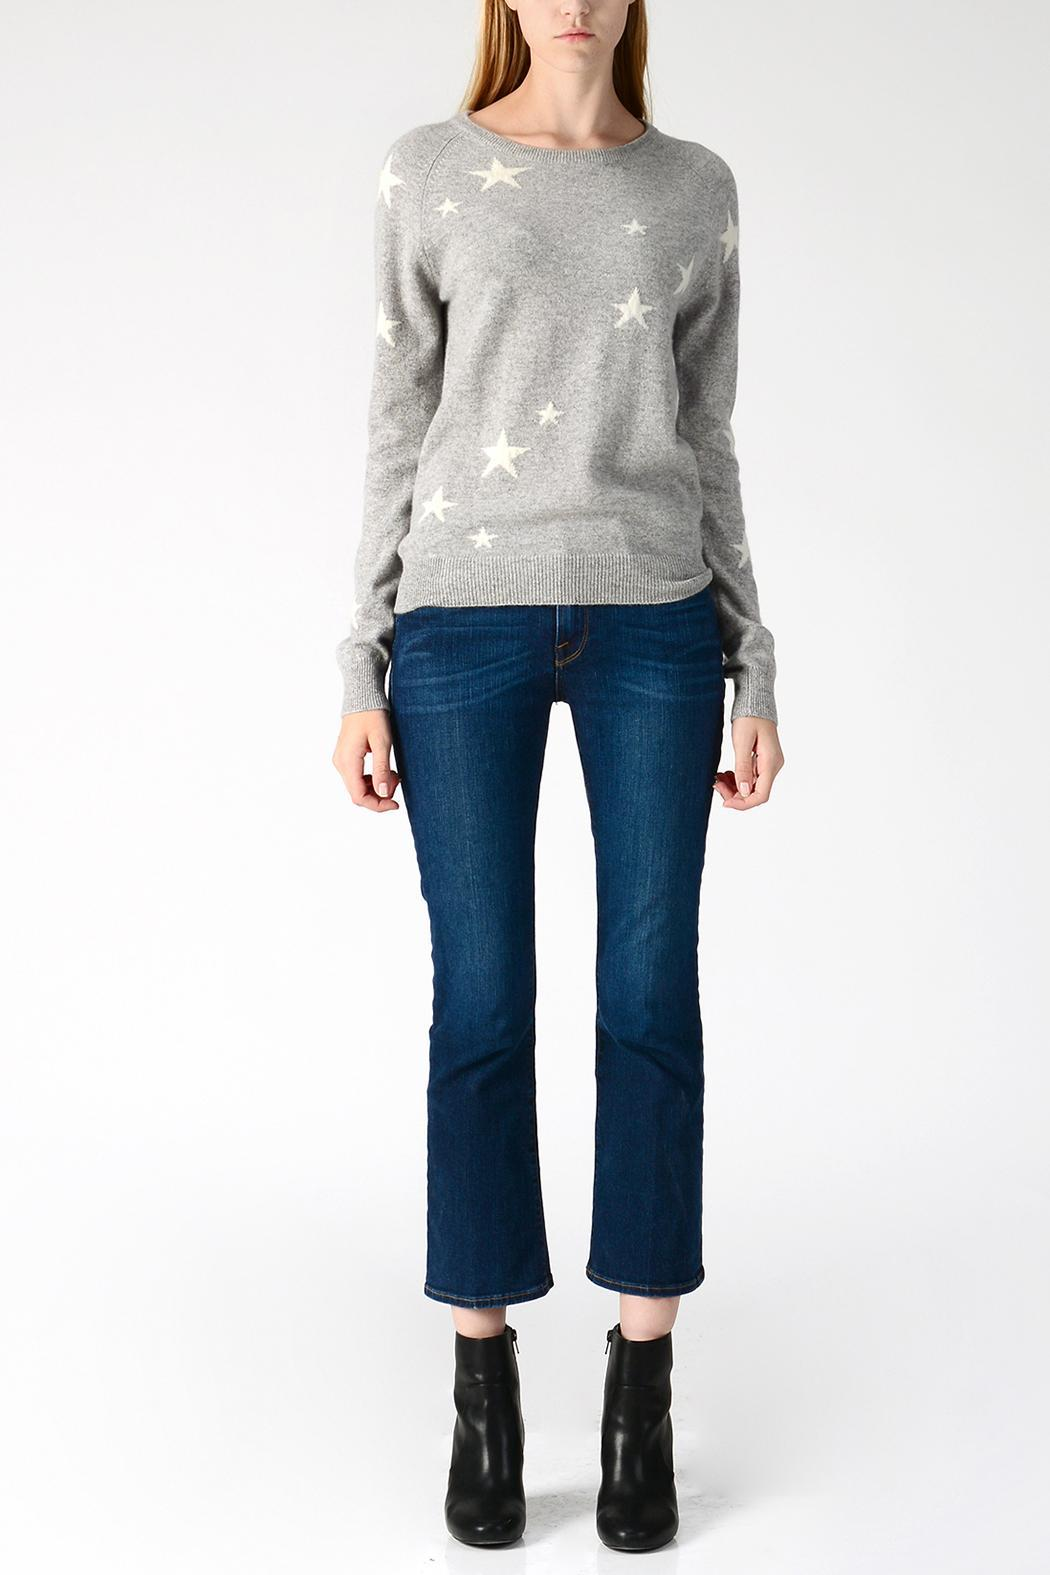 af6c747aa12 PURE CASHMERE Star Crewneck Sweater from New Jersey by Blancsom ...